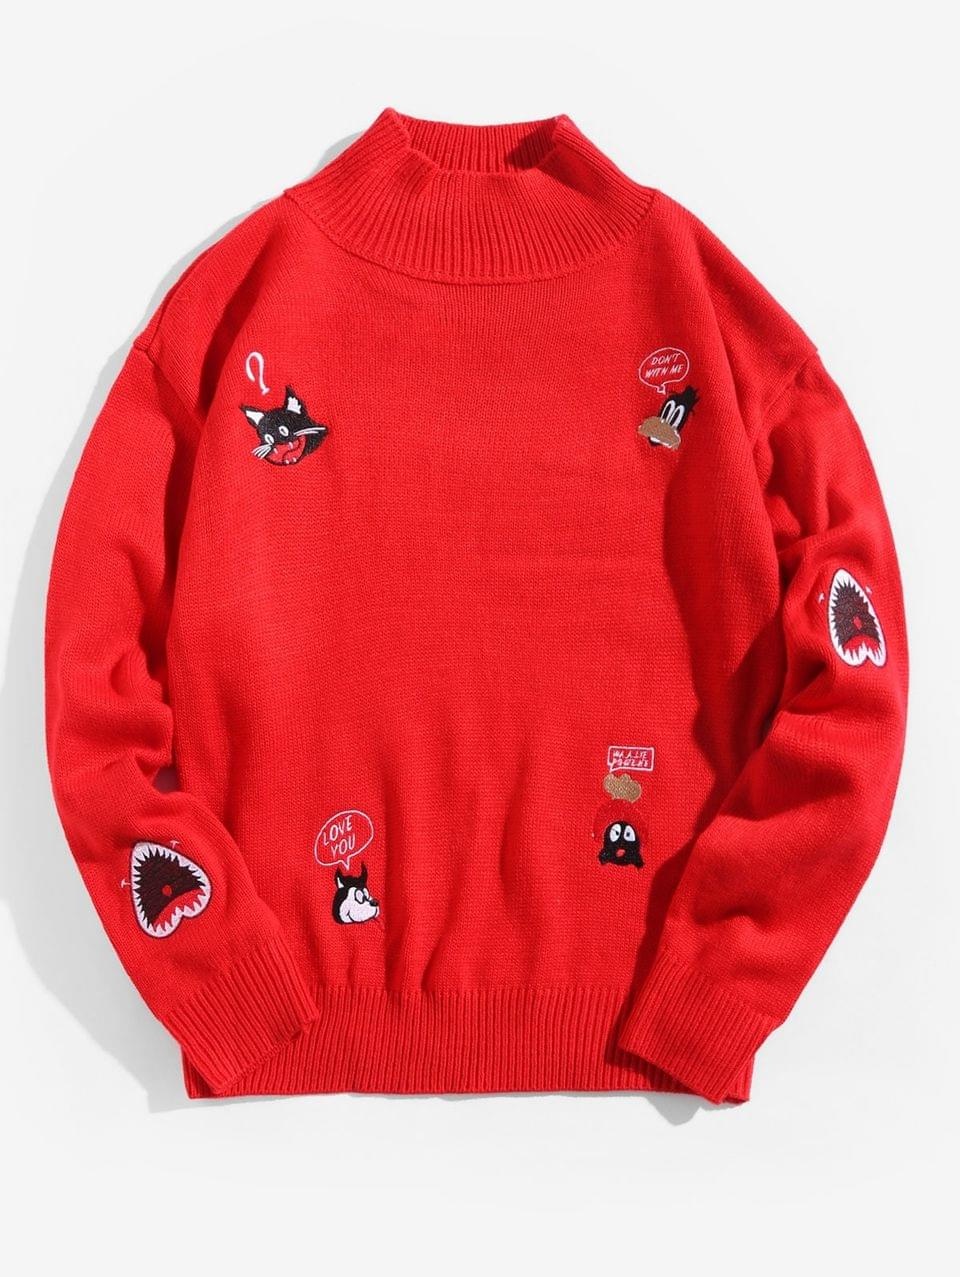 Men's Embroidery Animal Letter Graphic Mock Collar Pullover Sweater - Lava Red M